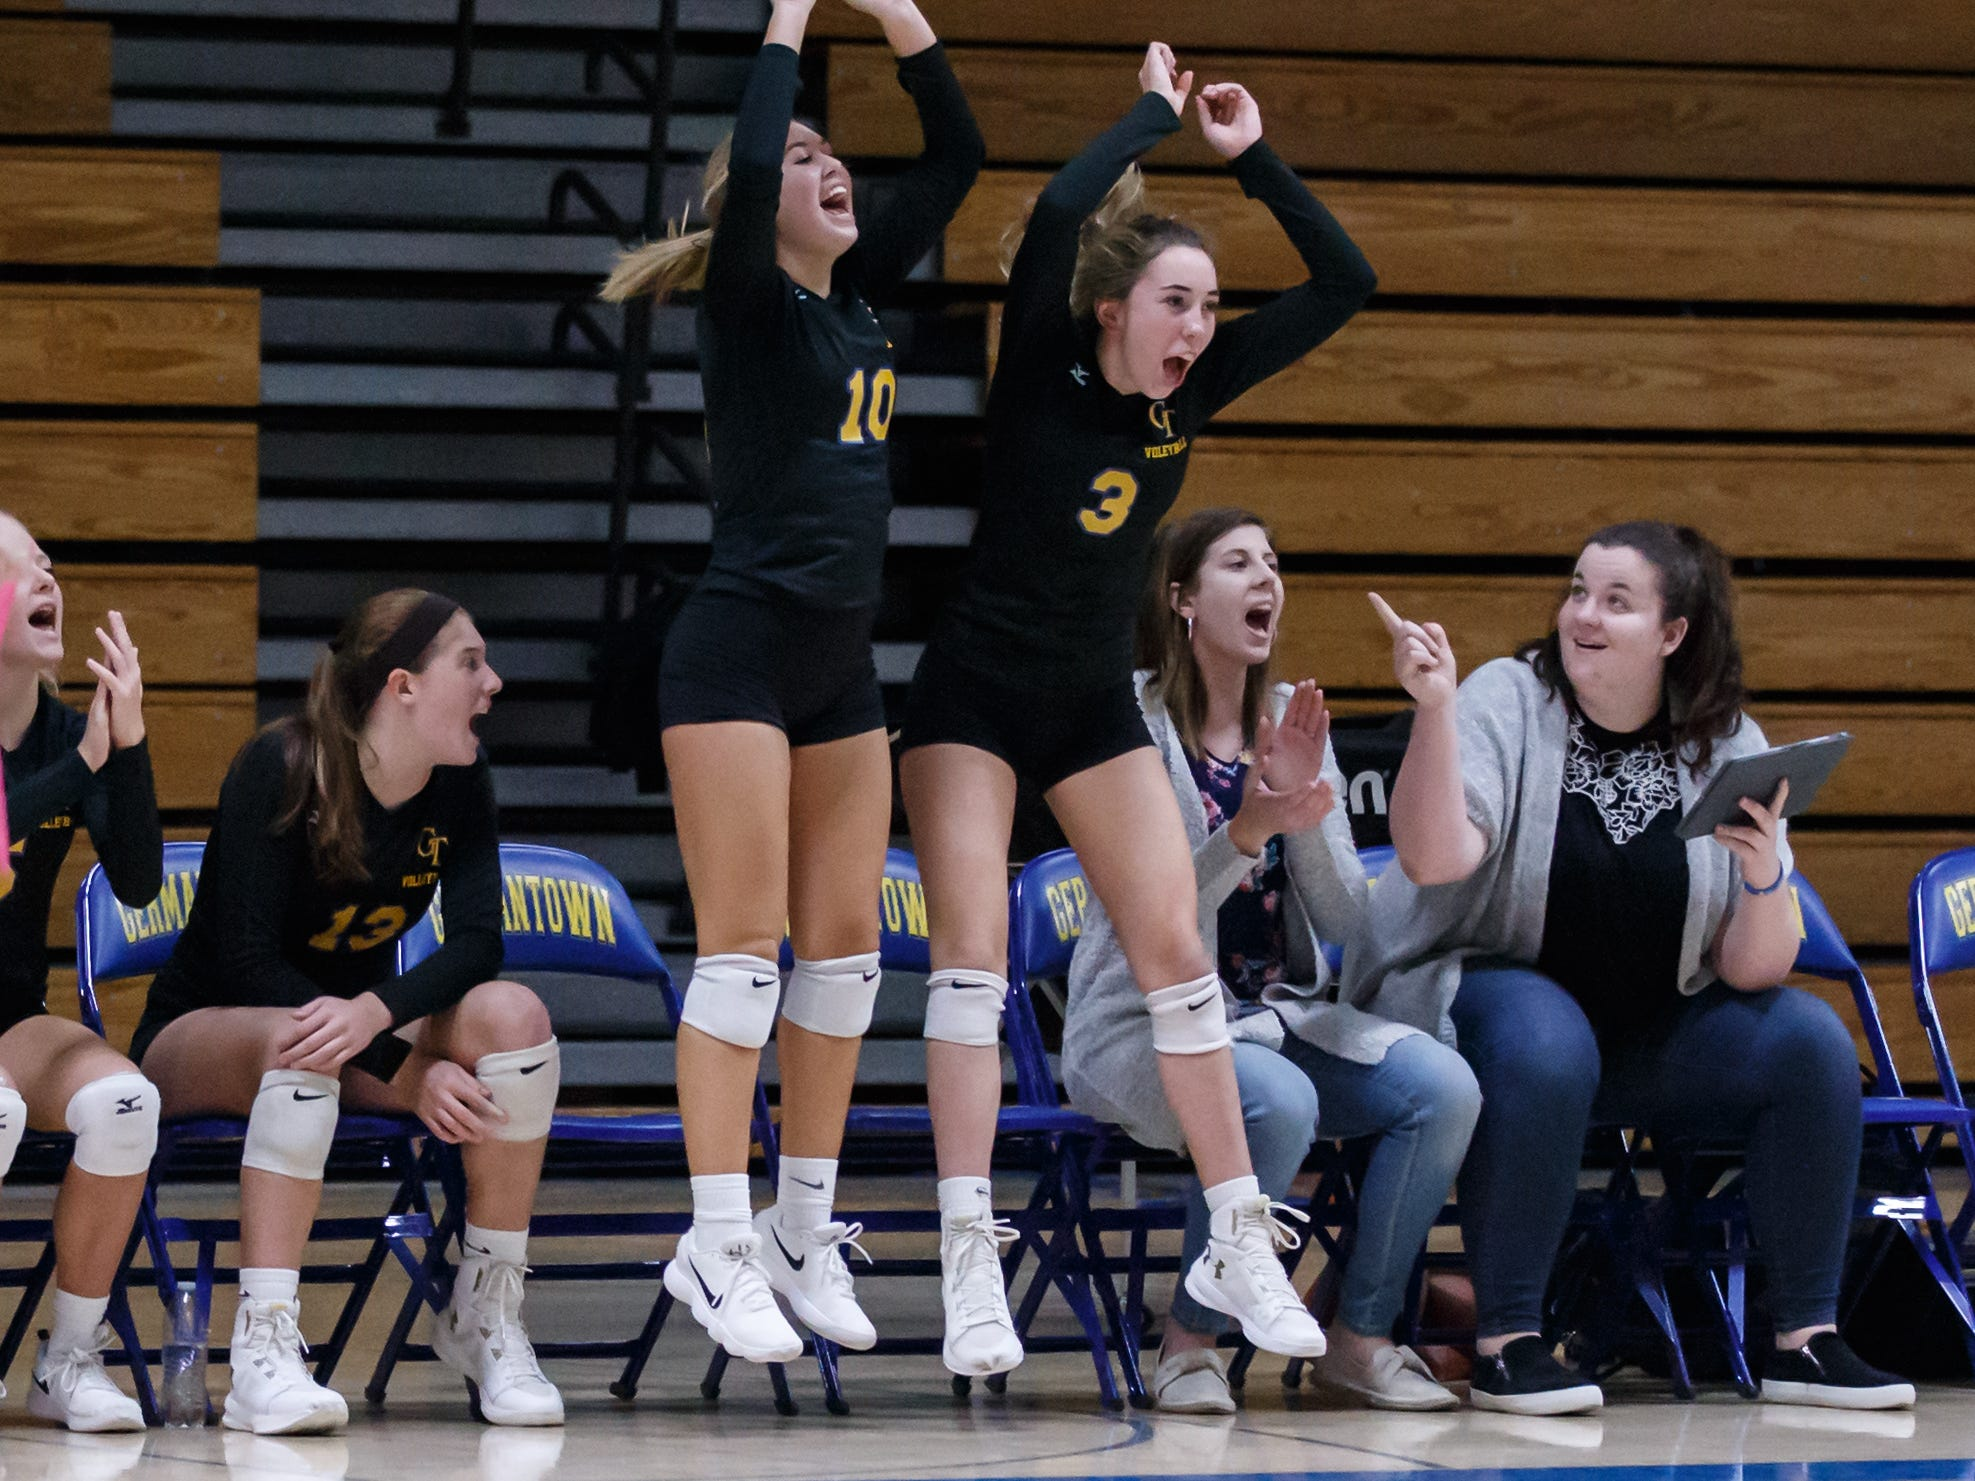 Germantown players Julia Maas (10) and Halee Behrens (3) celebrate winning the first set during the WIAA Regional match at home against Homestead on Thursday, Oct. 18, 2018. Germantown won the match 25-21, 25-12, 25-18.